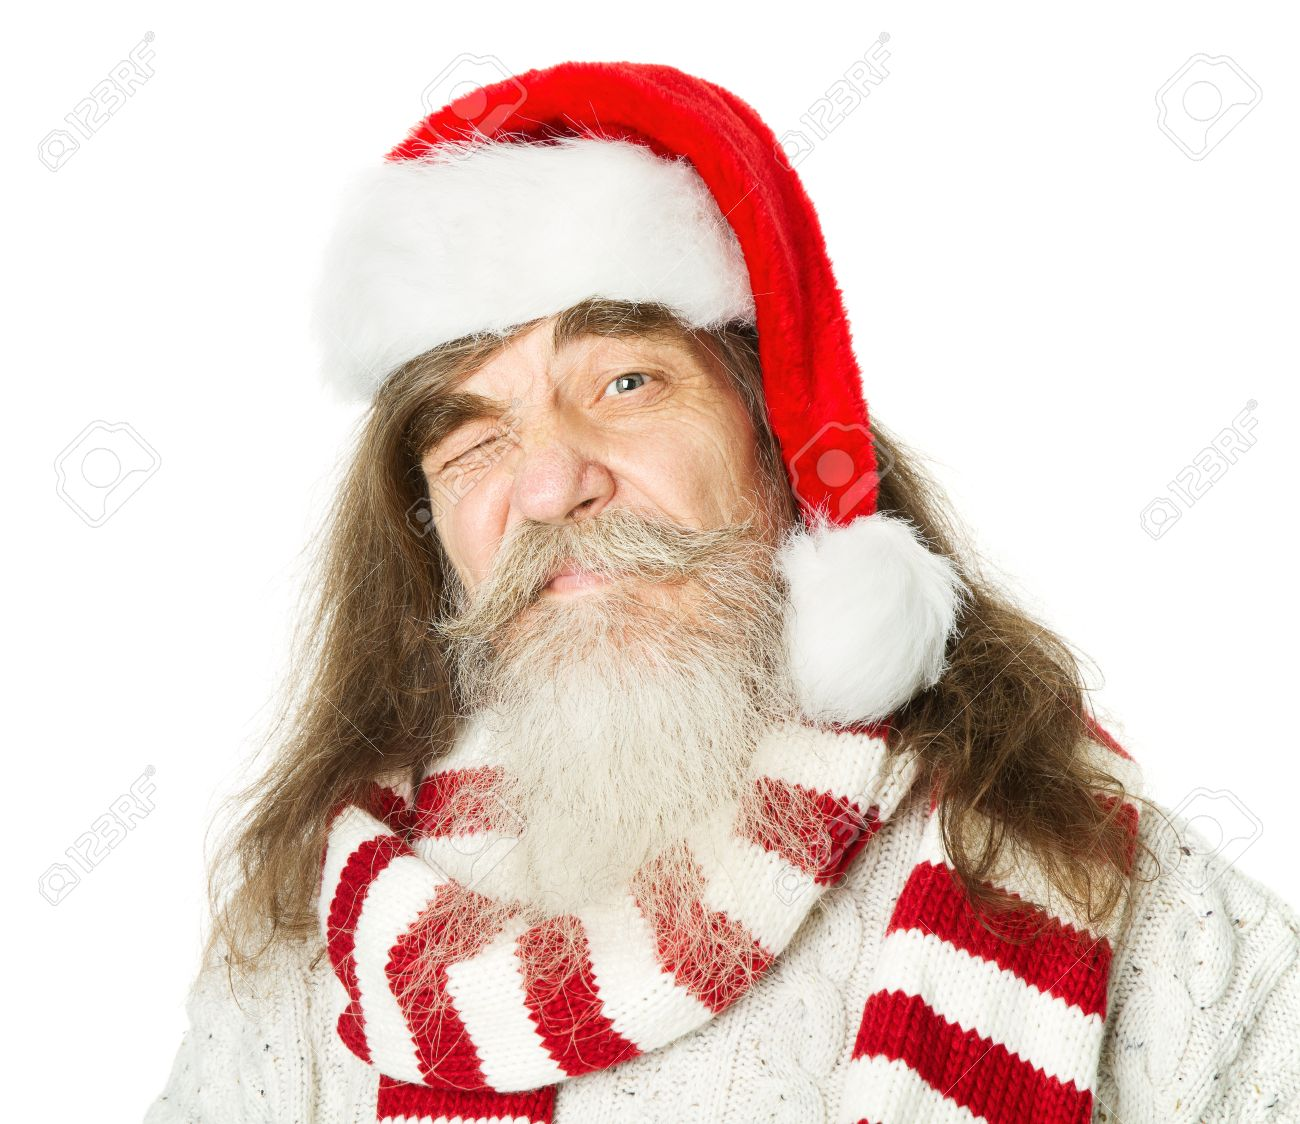 Christmas Old Man With Beard In Red Hat, Santa Claus Funny Parody ...